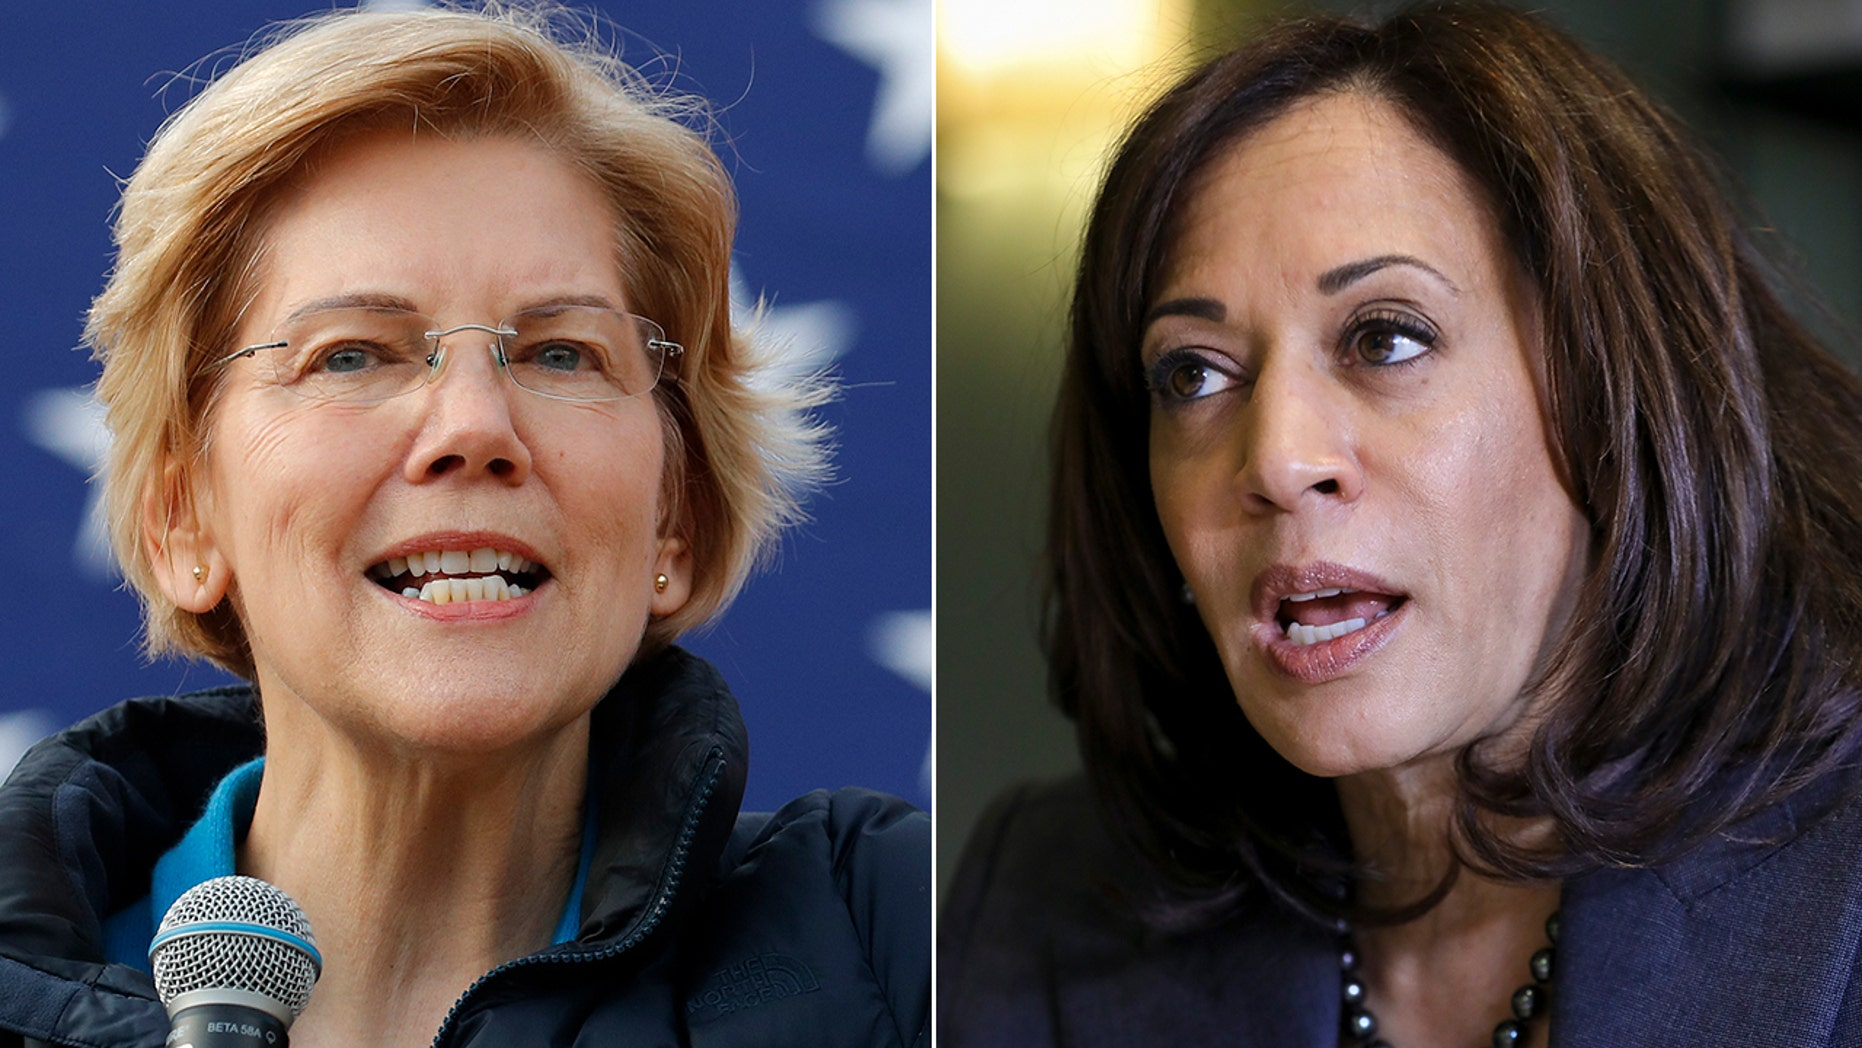 Democratic Sens. Elizabeth Warren of Massachusetts, left, and Kamala Harris of California have reportedly said they back reparations for black Americans affected by the legacy of slavery. (Associated Press)